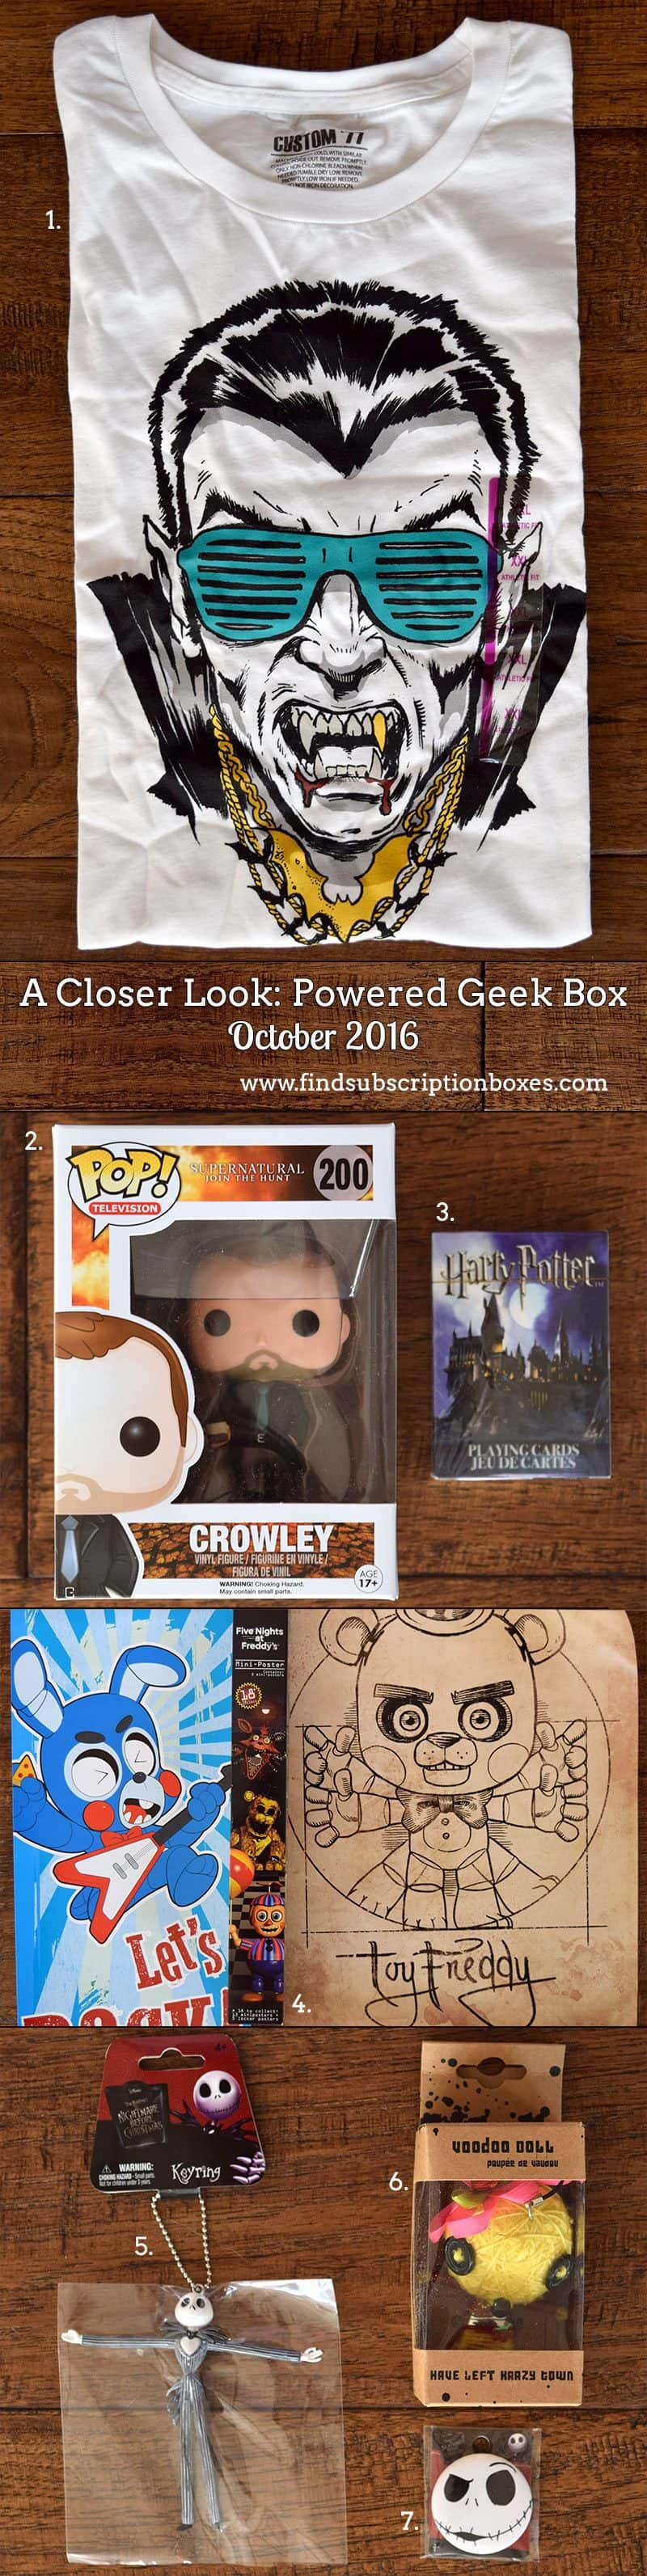 Powered Geek Box October 2016 Review - Inside the Box